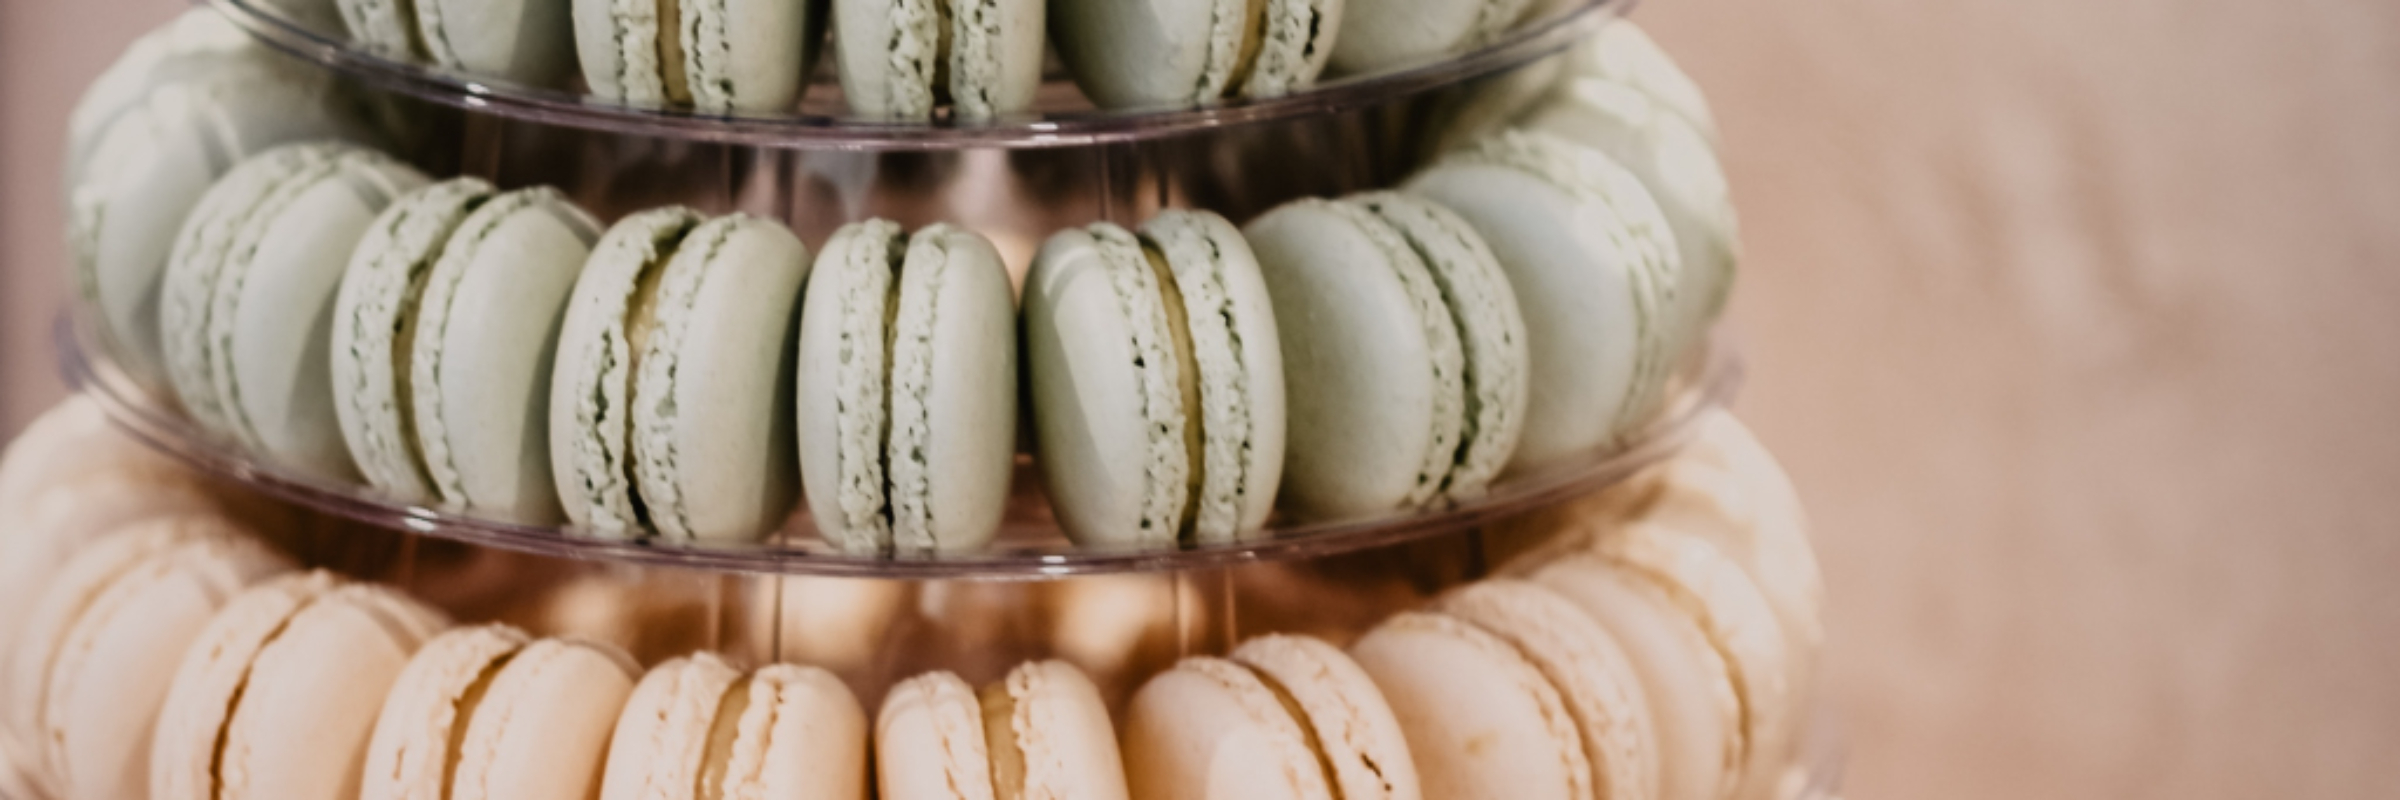 Slider-example-1-macarons-only